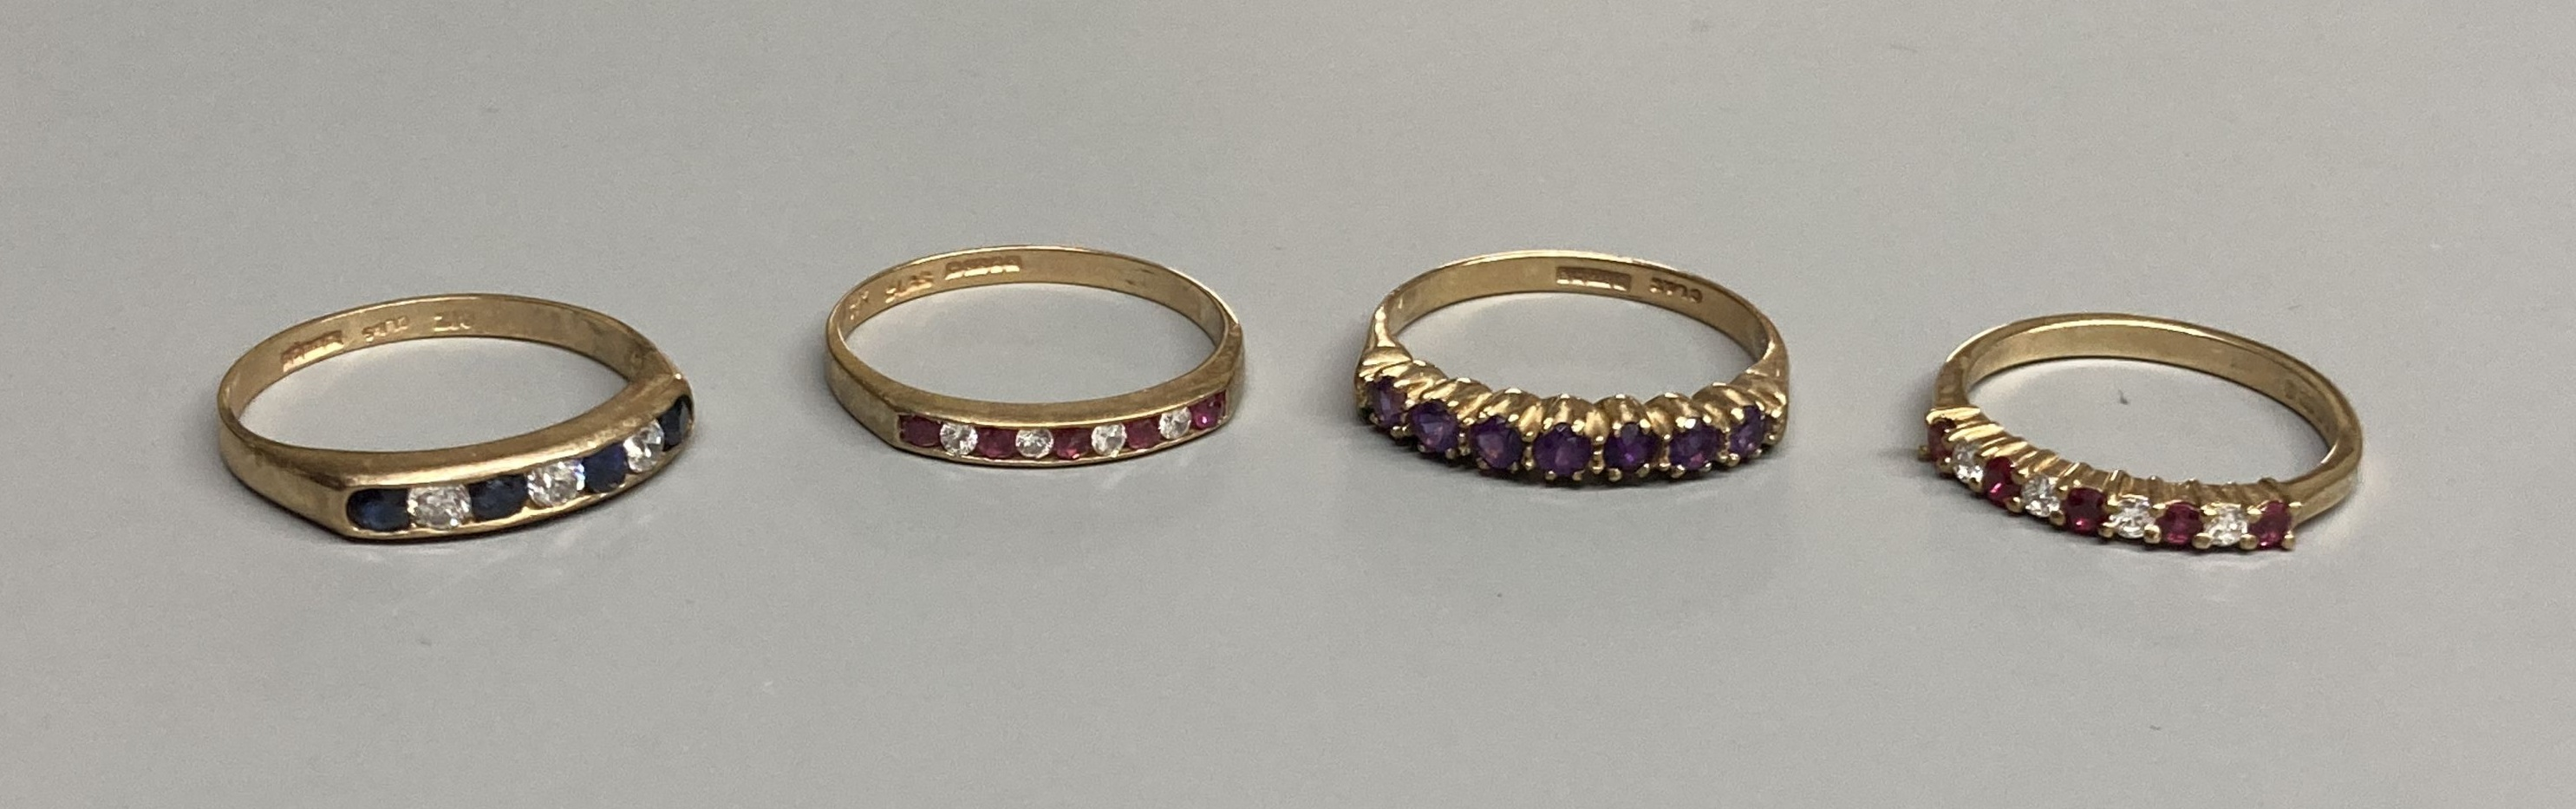 A modern 9ct gold, ruby and diamond set half hoop ring and a similar amethyst ring and two other 9ct